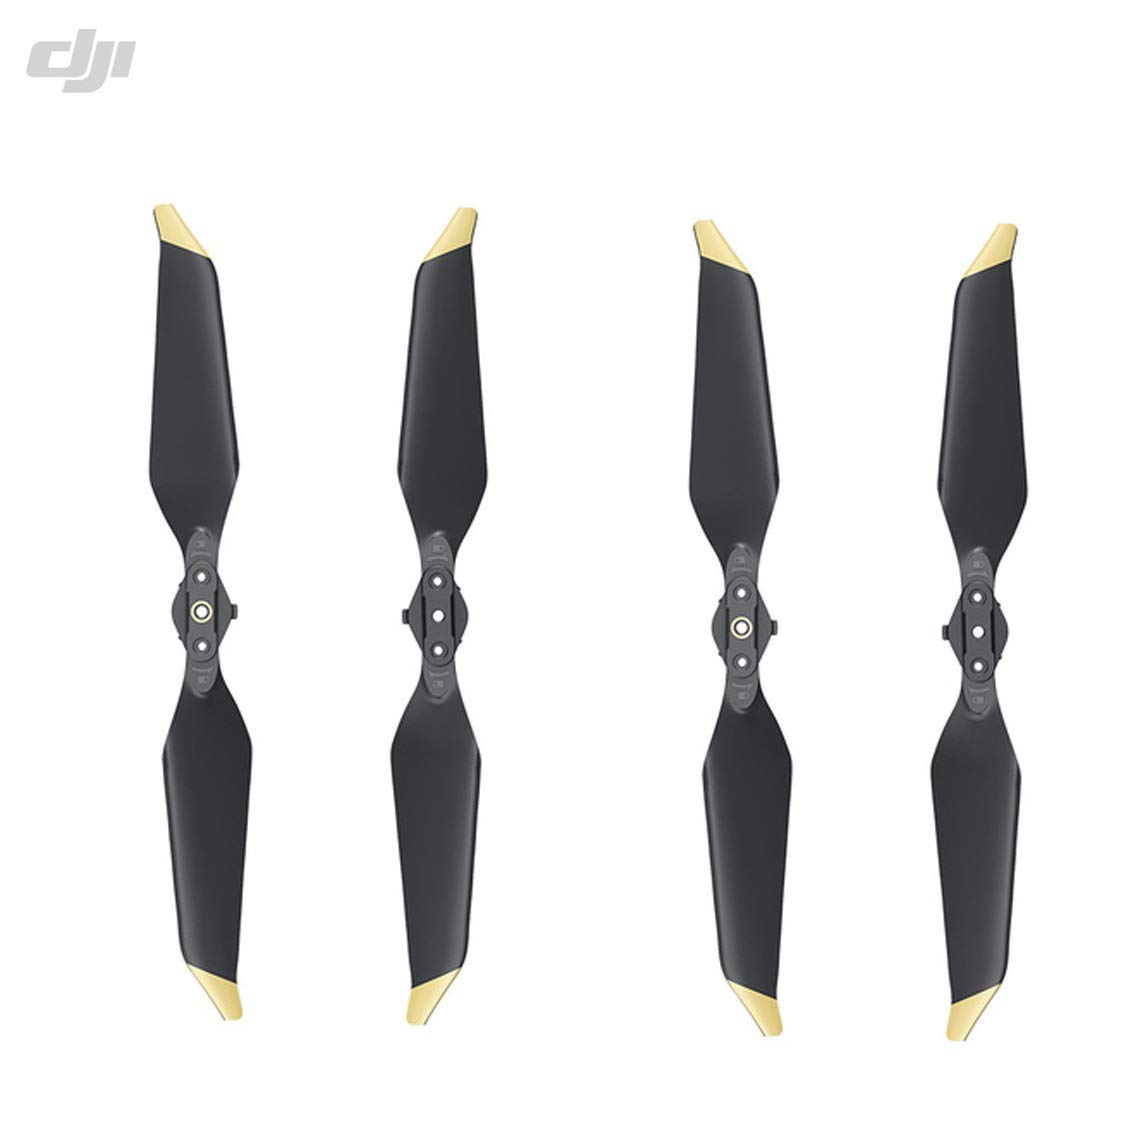 DJI Genuine Low-Noise Quick-Release 8331 Propellers for Mavic Pro or Mavic Pro Platinum 2 Pairs Gold